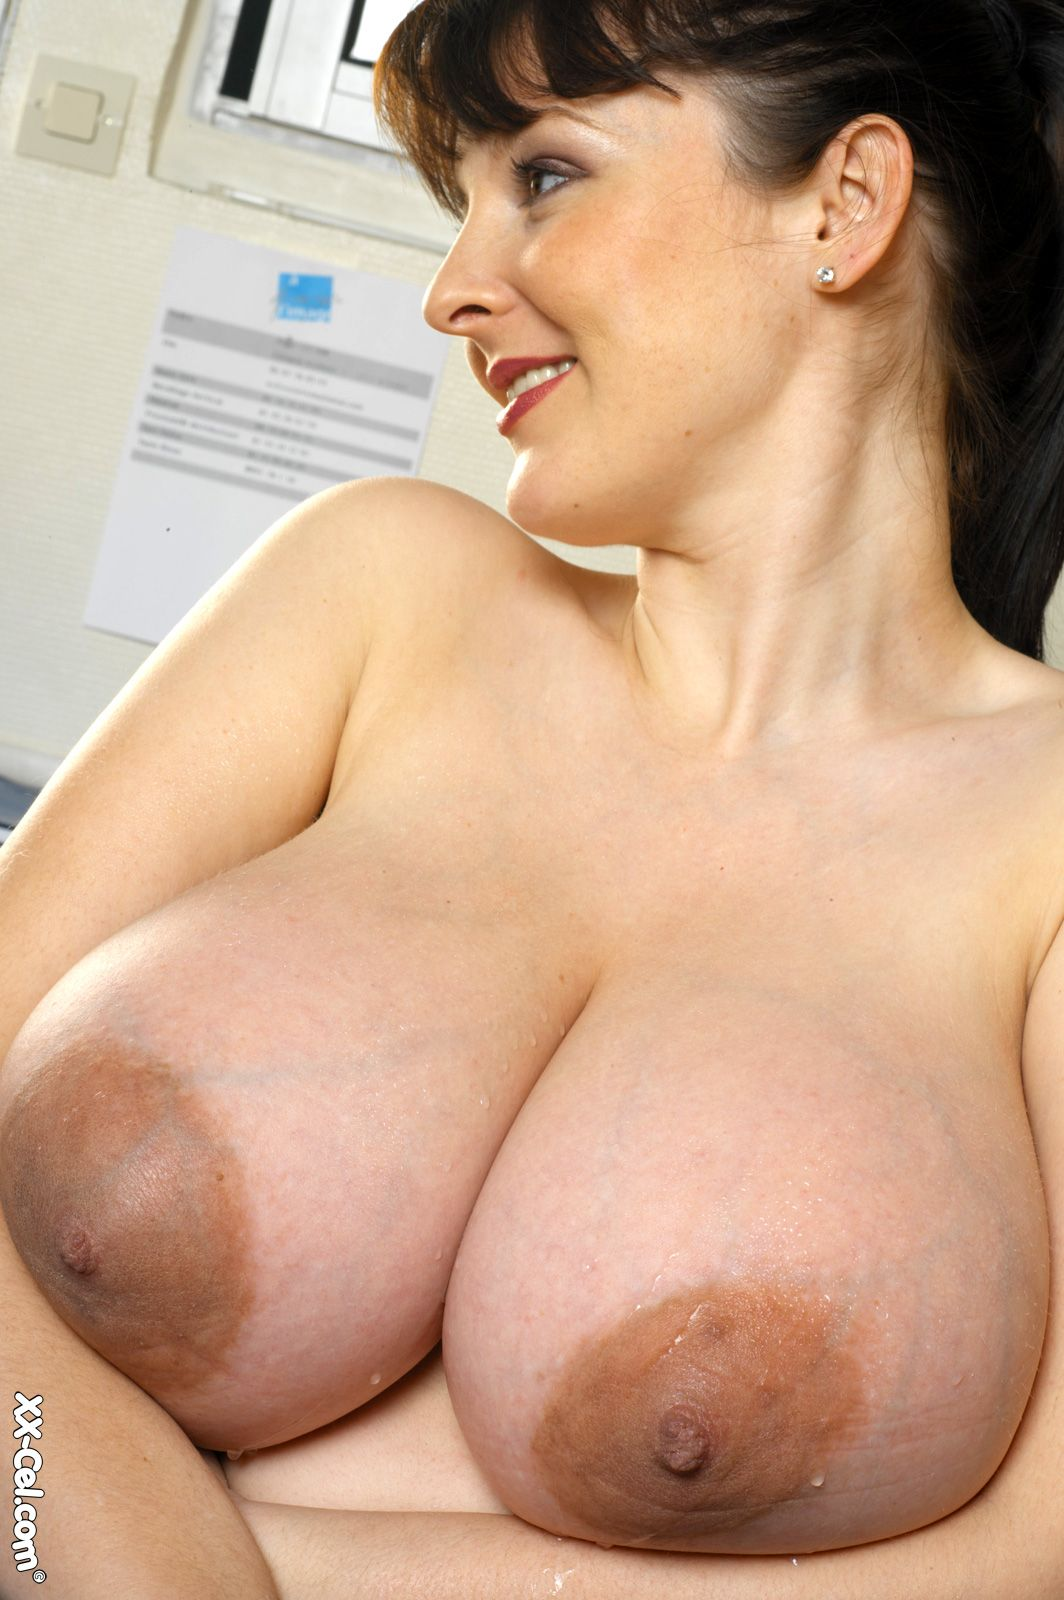 Nice... big milf nipples yeah. This